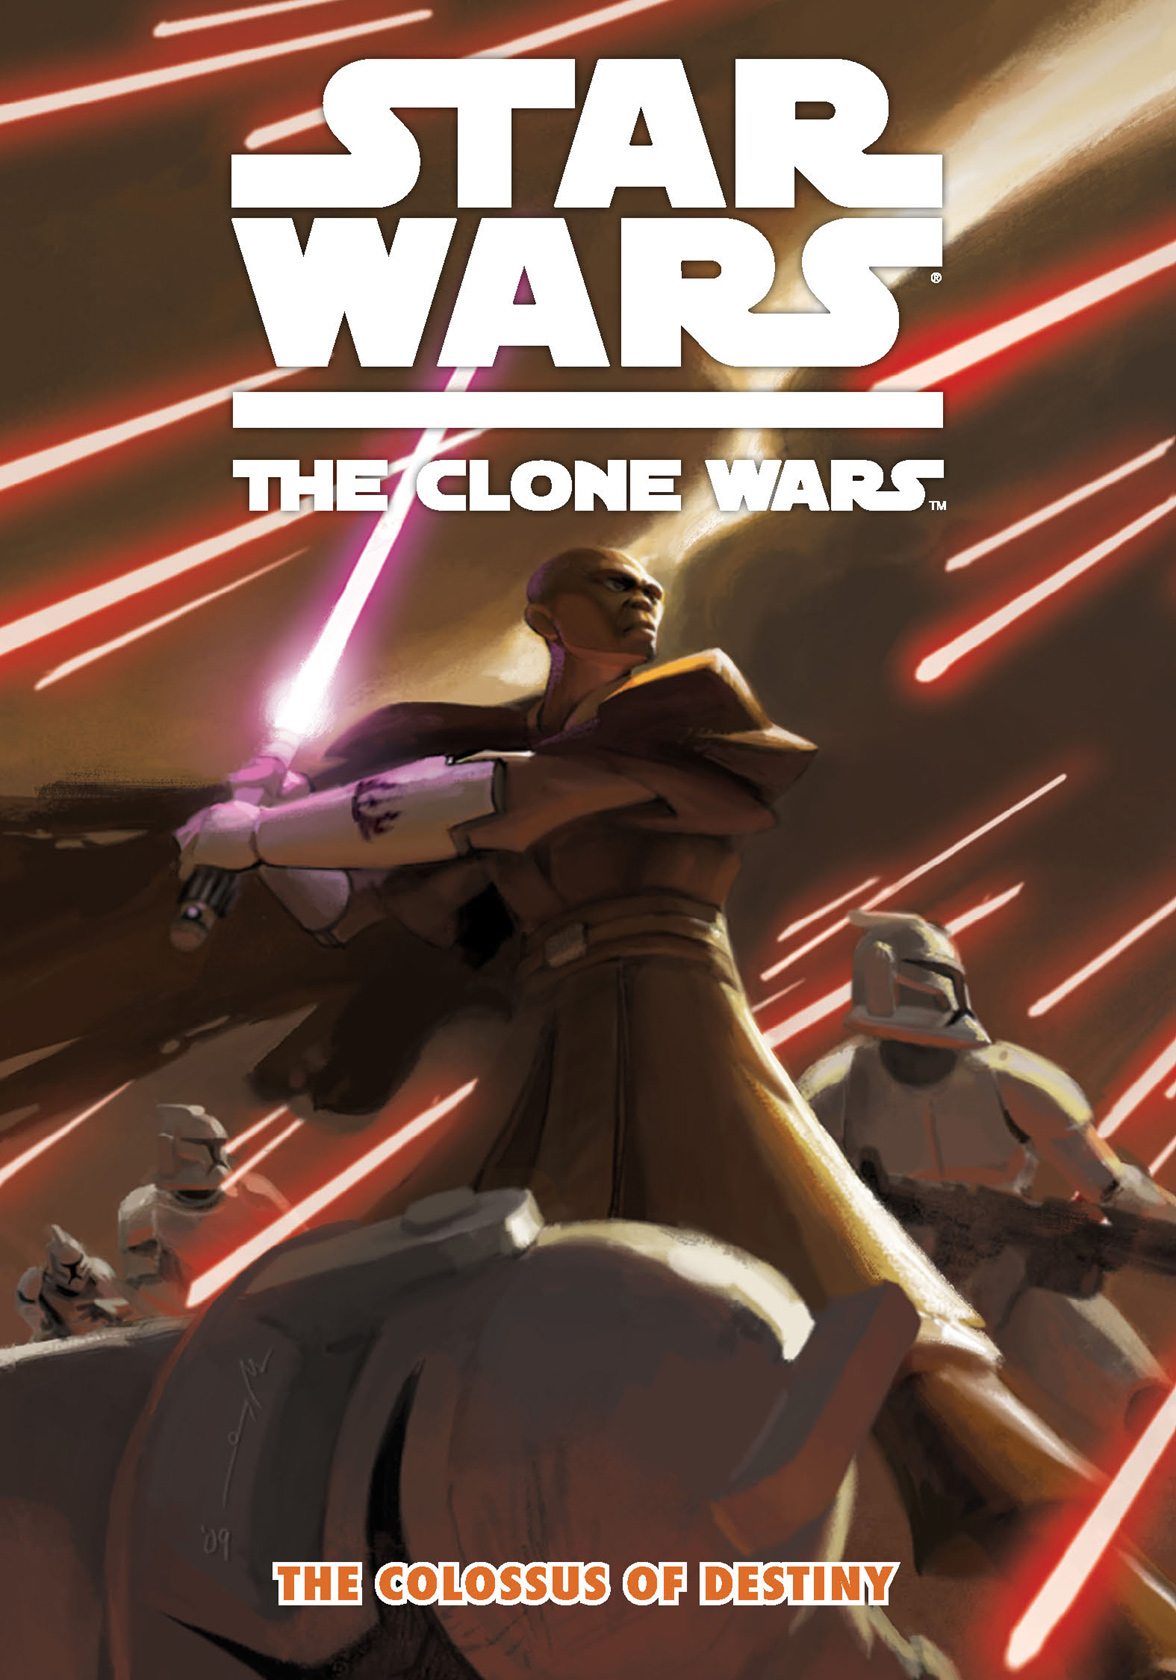 Star Wars: The Clone Wars -- The Colossus of Destiny By: Jeremy Barlow,Matt and Shawn Fillbach